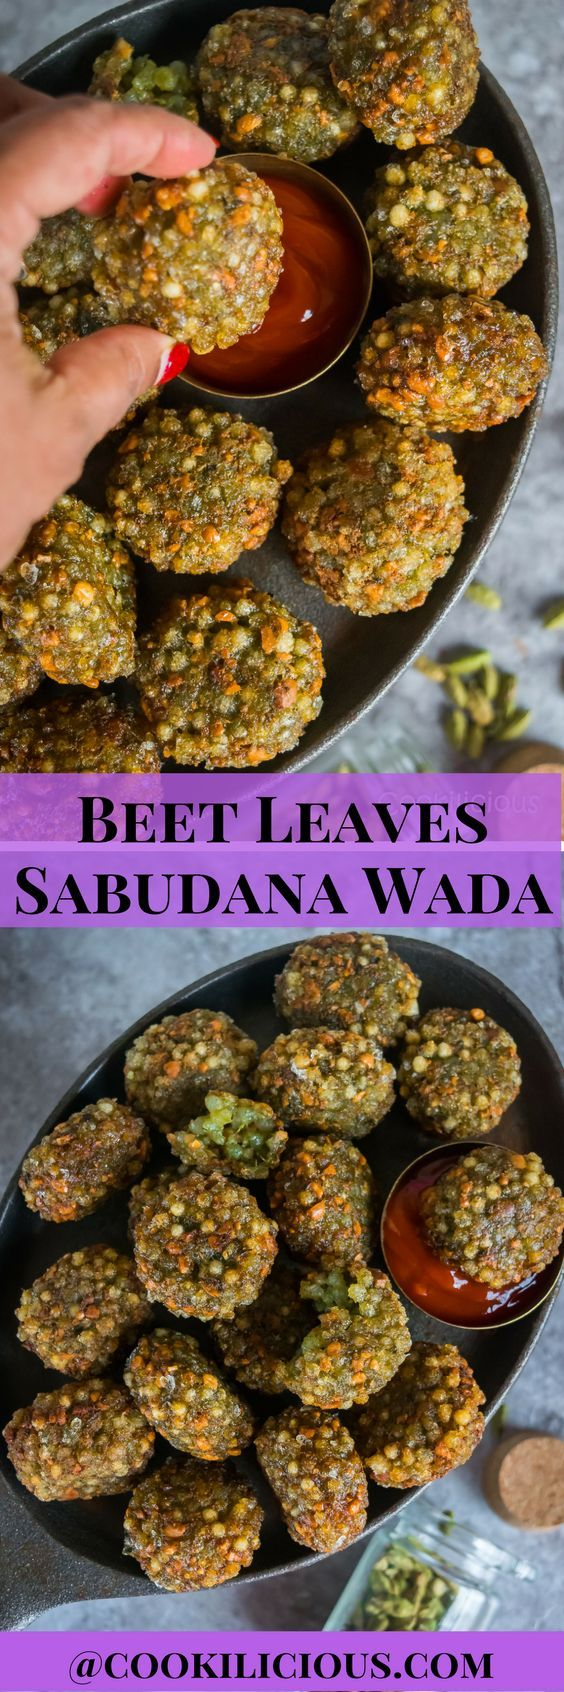 Sabudana Vada (Crispy Sago/tapioca pearl fritters) is a widely popular snack from Maharashtra especially during the fasting times. These deep-fried vadas are crispy on the outside and soft on the inside with a surprise addition of beet leaves. Serve them hot with green chutney/ketchup and enjoy this mouthwatering snack.